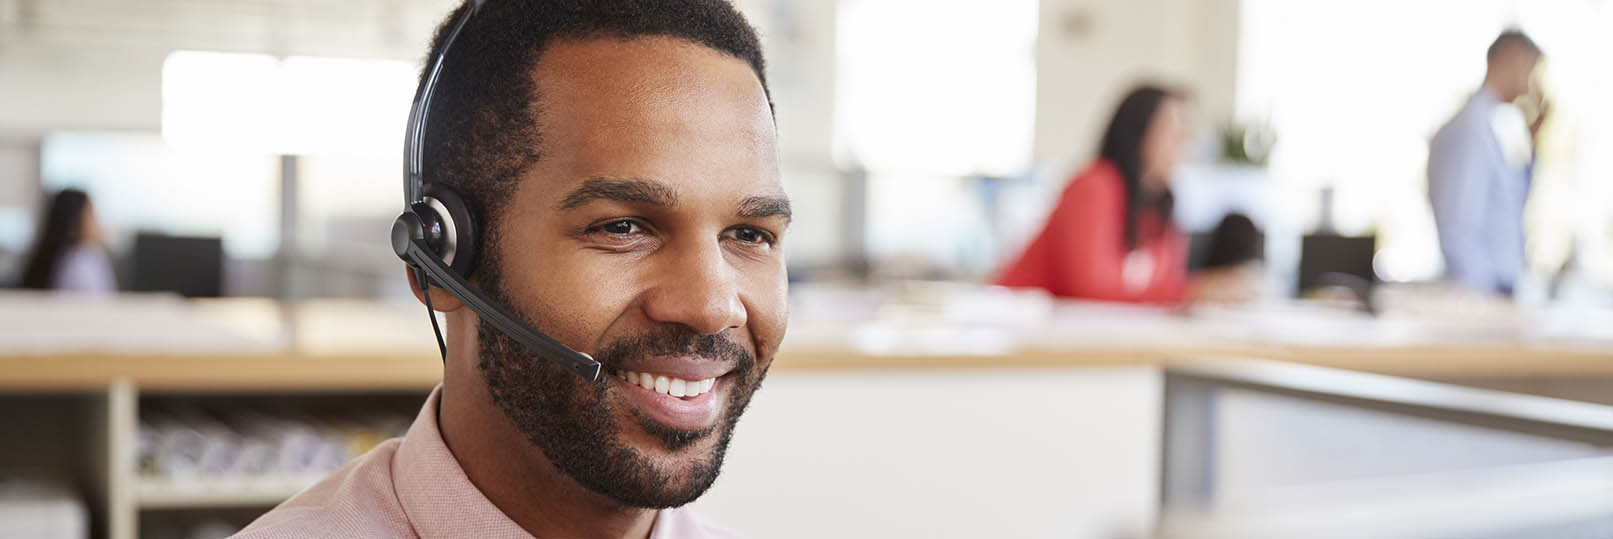 man in call center answering phone calls